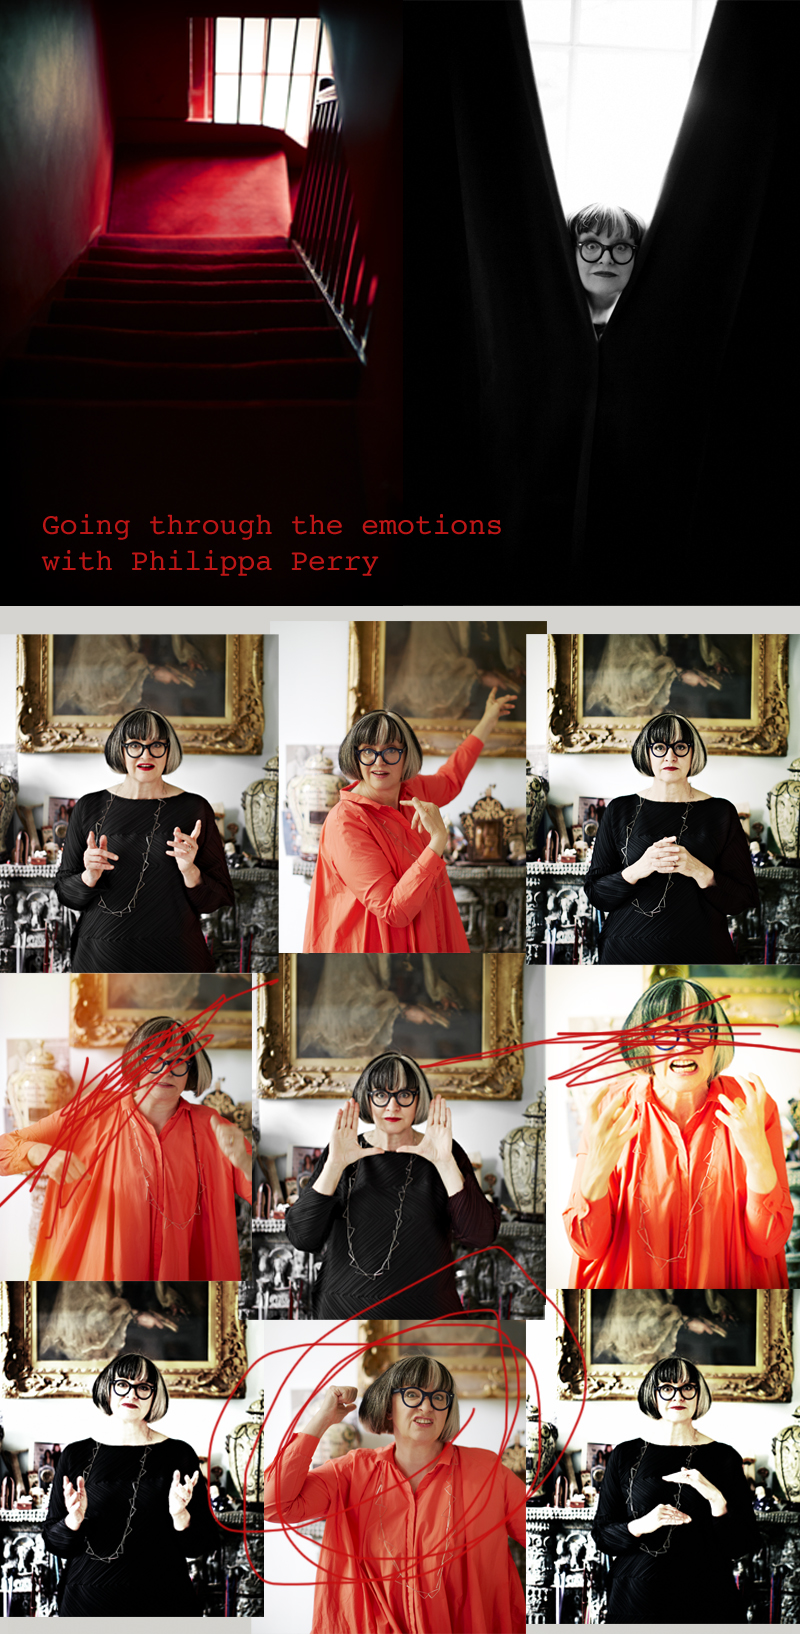 Philippha Perry, Going through the emotions